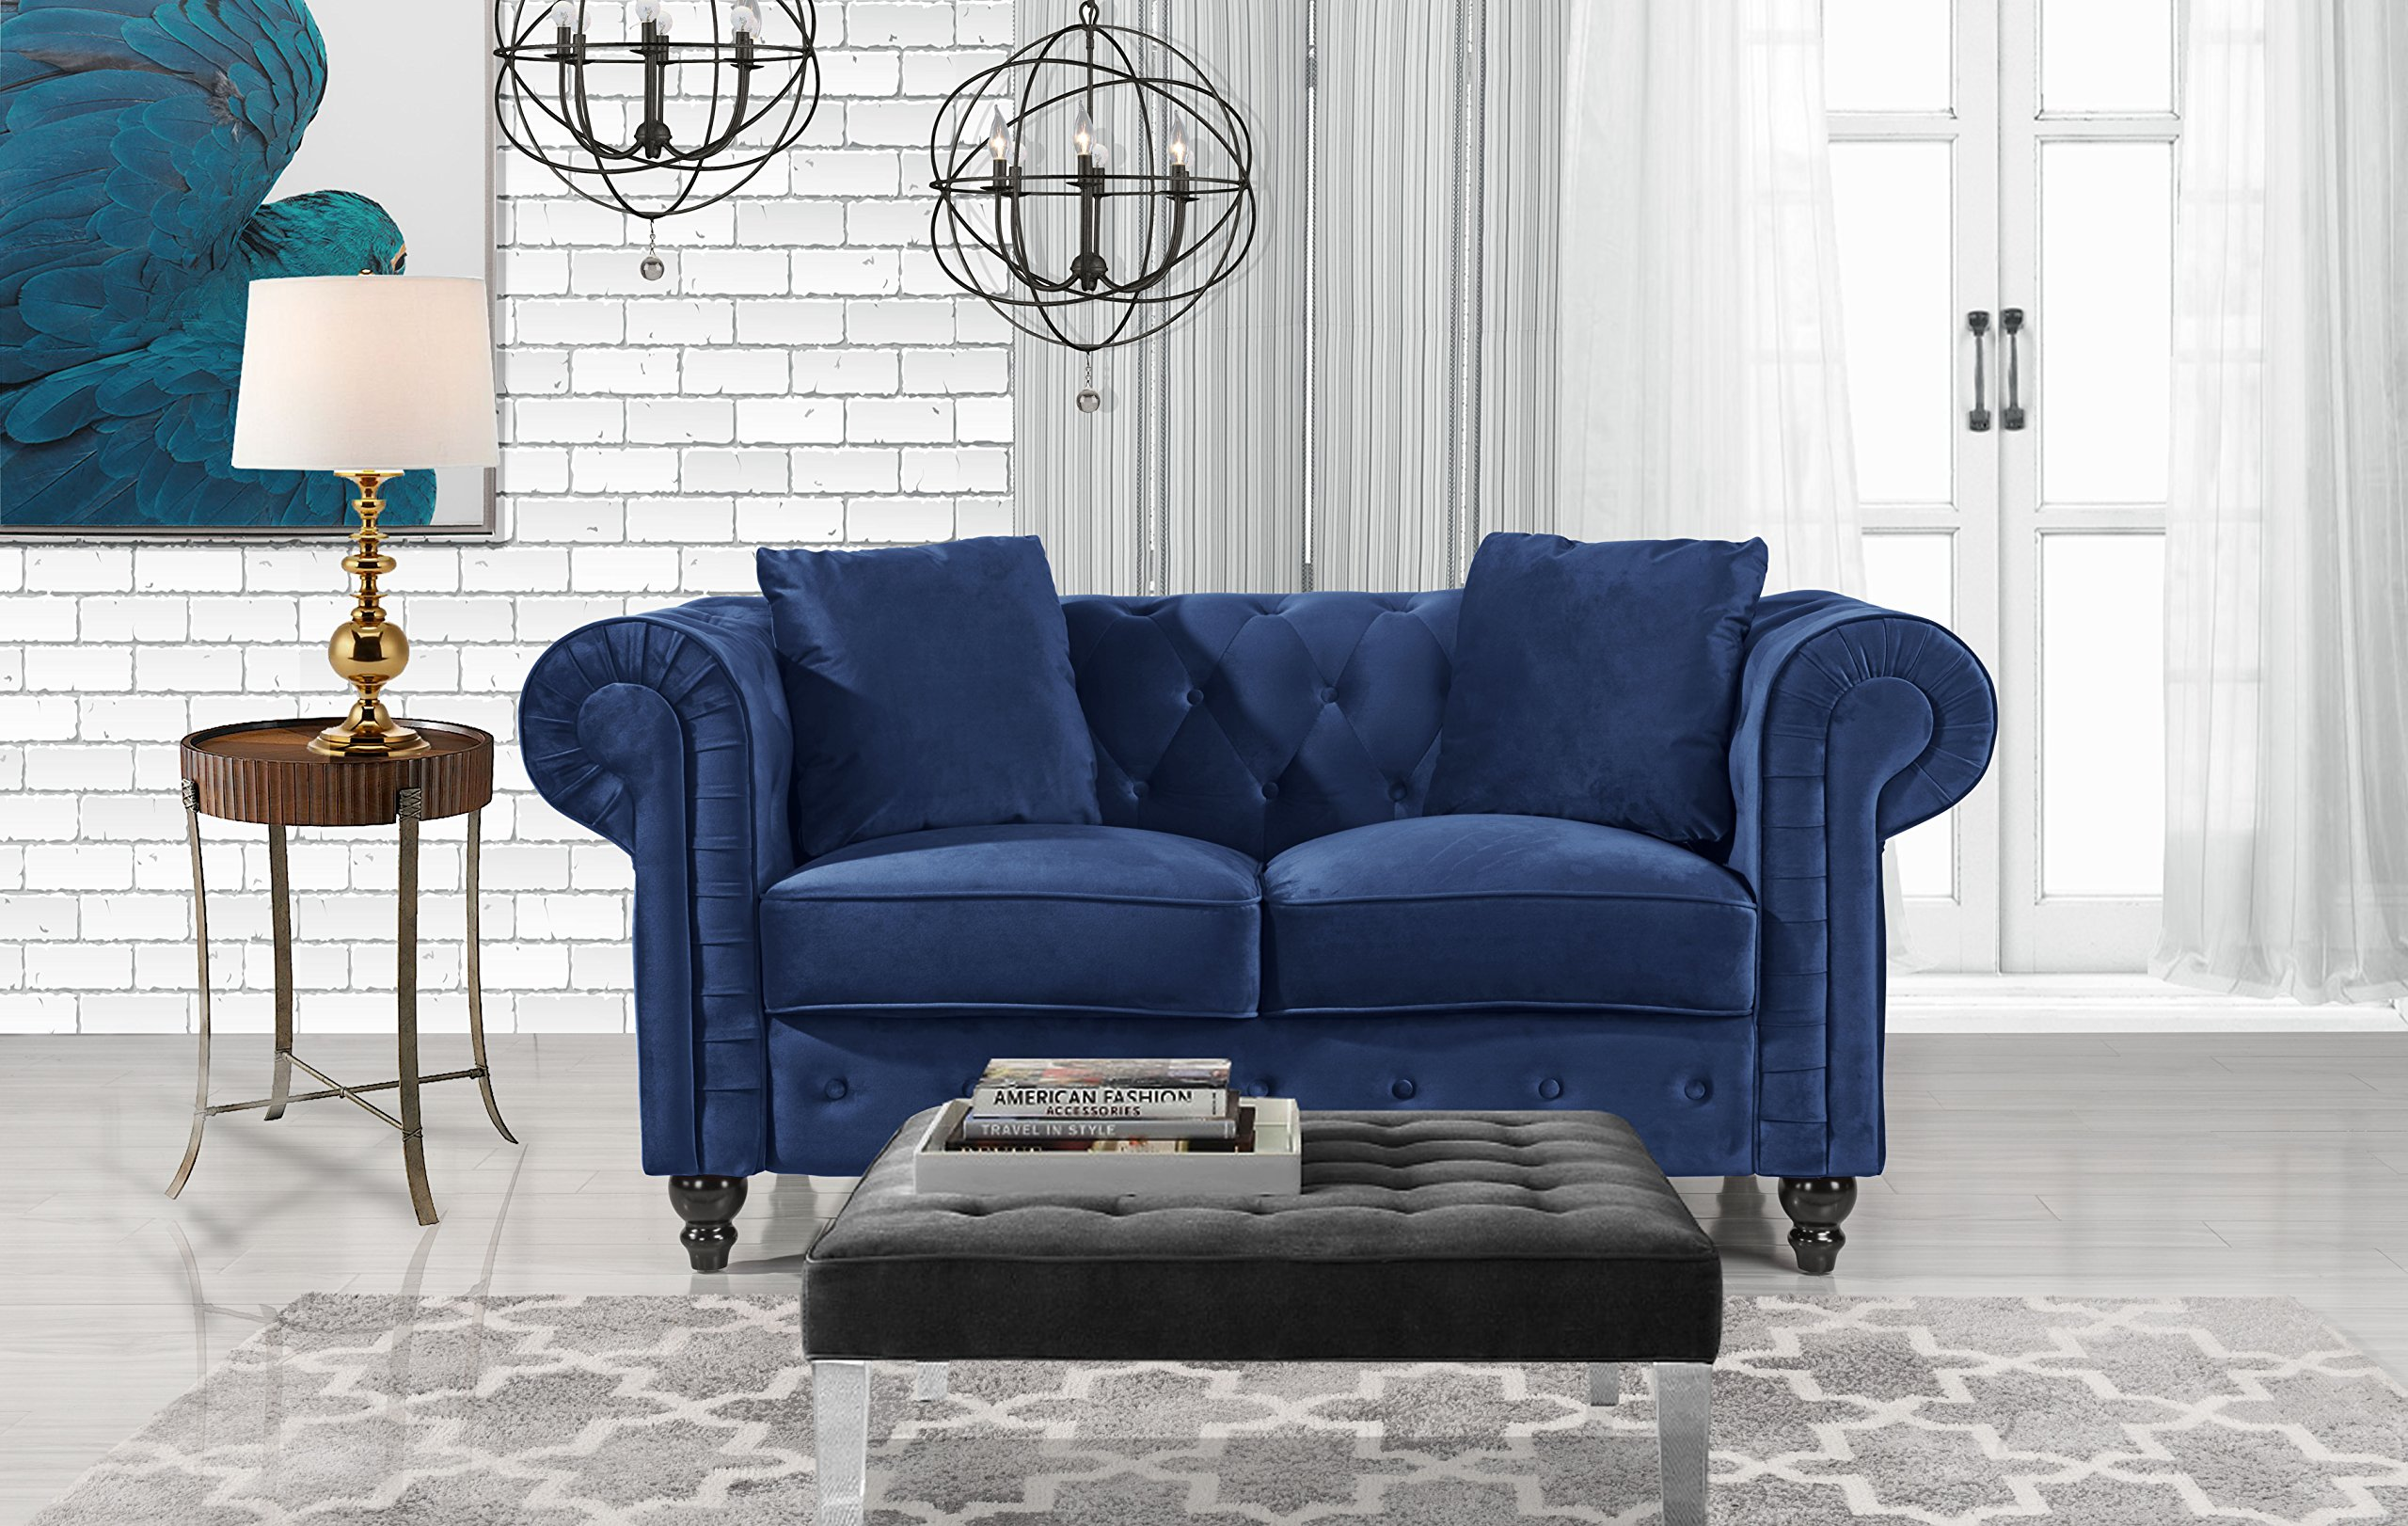 Furniture Classic Modern Scroll Arm Velvet Chesterfield Love Seat Sofa (Blue) - Ultra soft and comfortable chesterfield style love seat with tufted design for that classic and sophisticated look Premium velvet upholstery with overstuffed arms and back rests for comfort, tufted plush arm rests Removable seat cushions with velcro attached to avoid sliding, Victorian style wooden legs. - sofas-couches, living-room-furniture, living-room - 91isyLA8NFL -